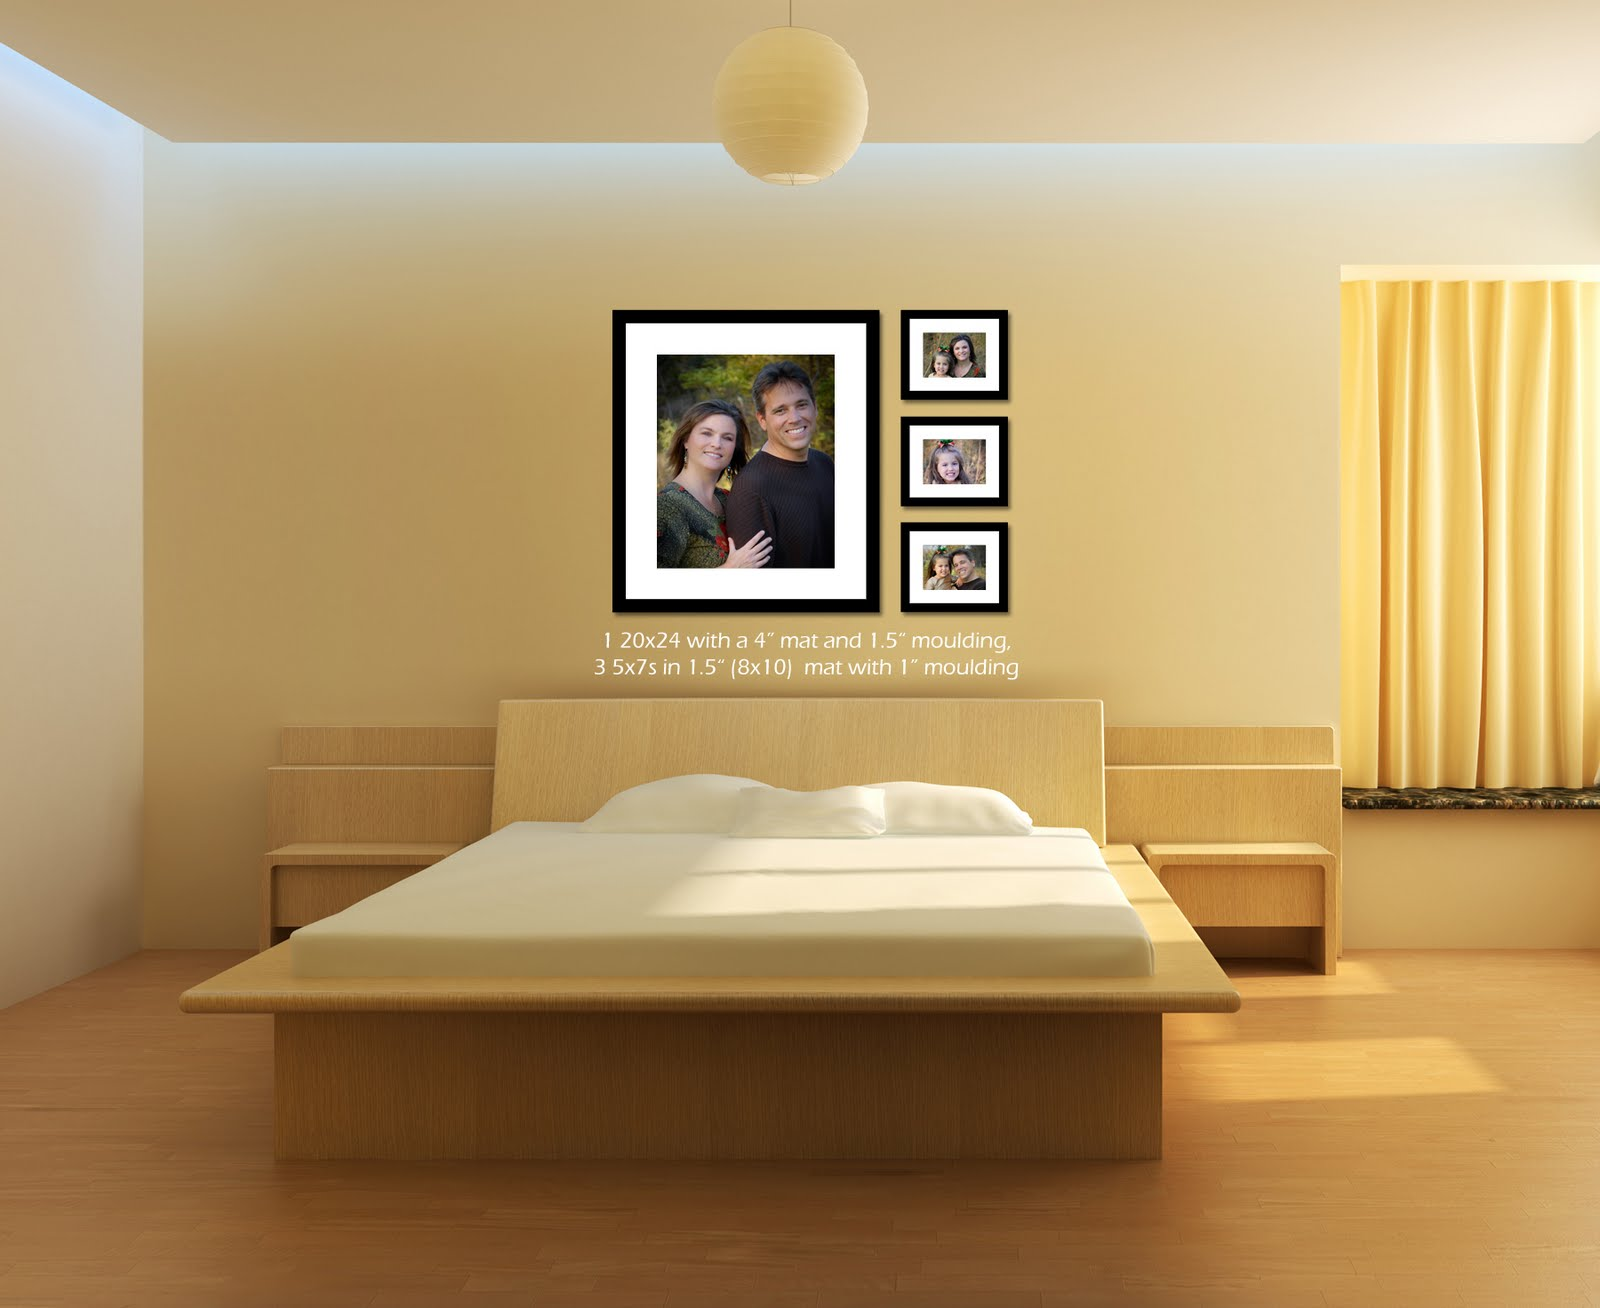 pictures for the bedroom wall photo - 1